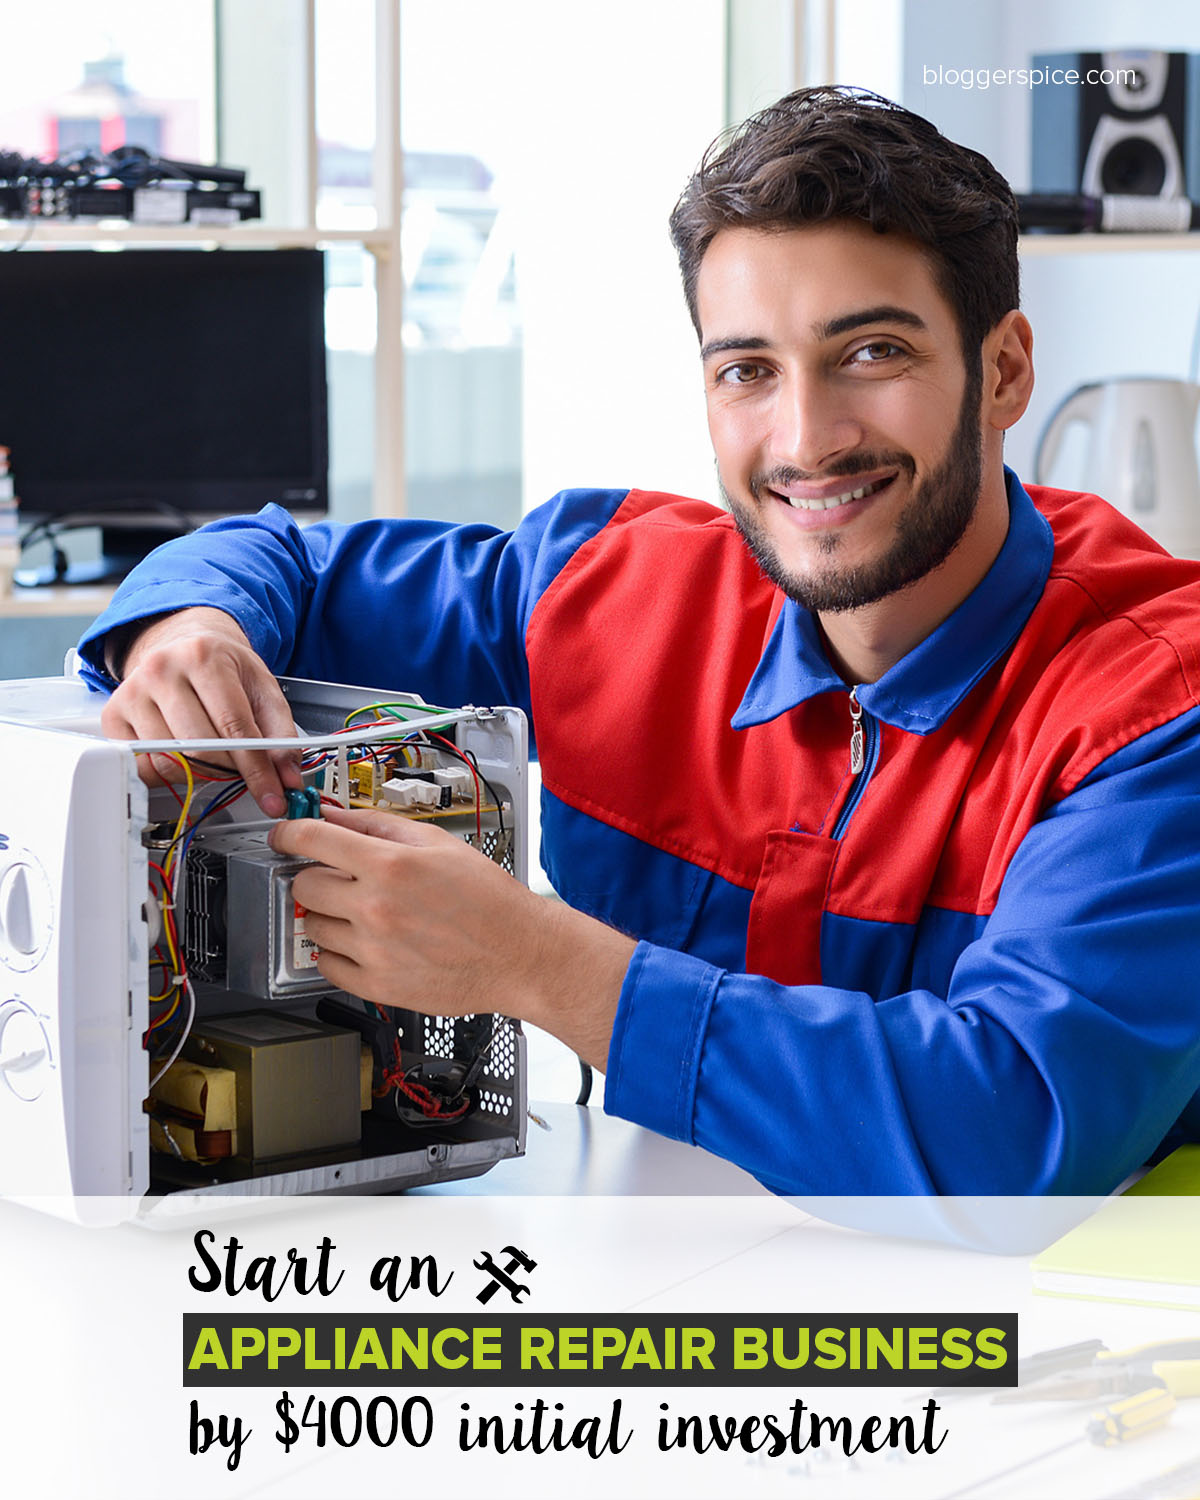 Start an appliance repair business by $4000 initial investment?